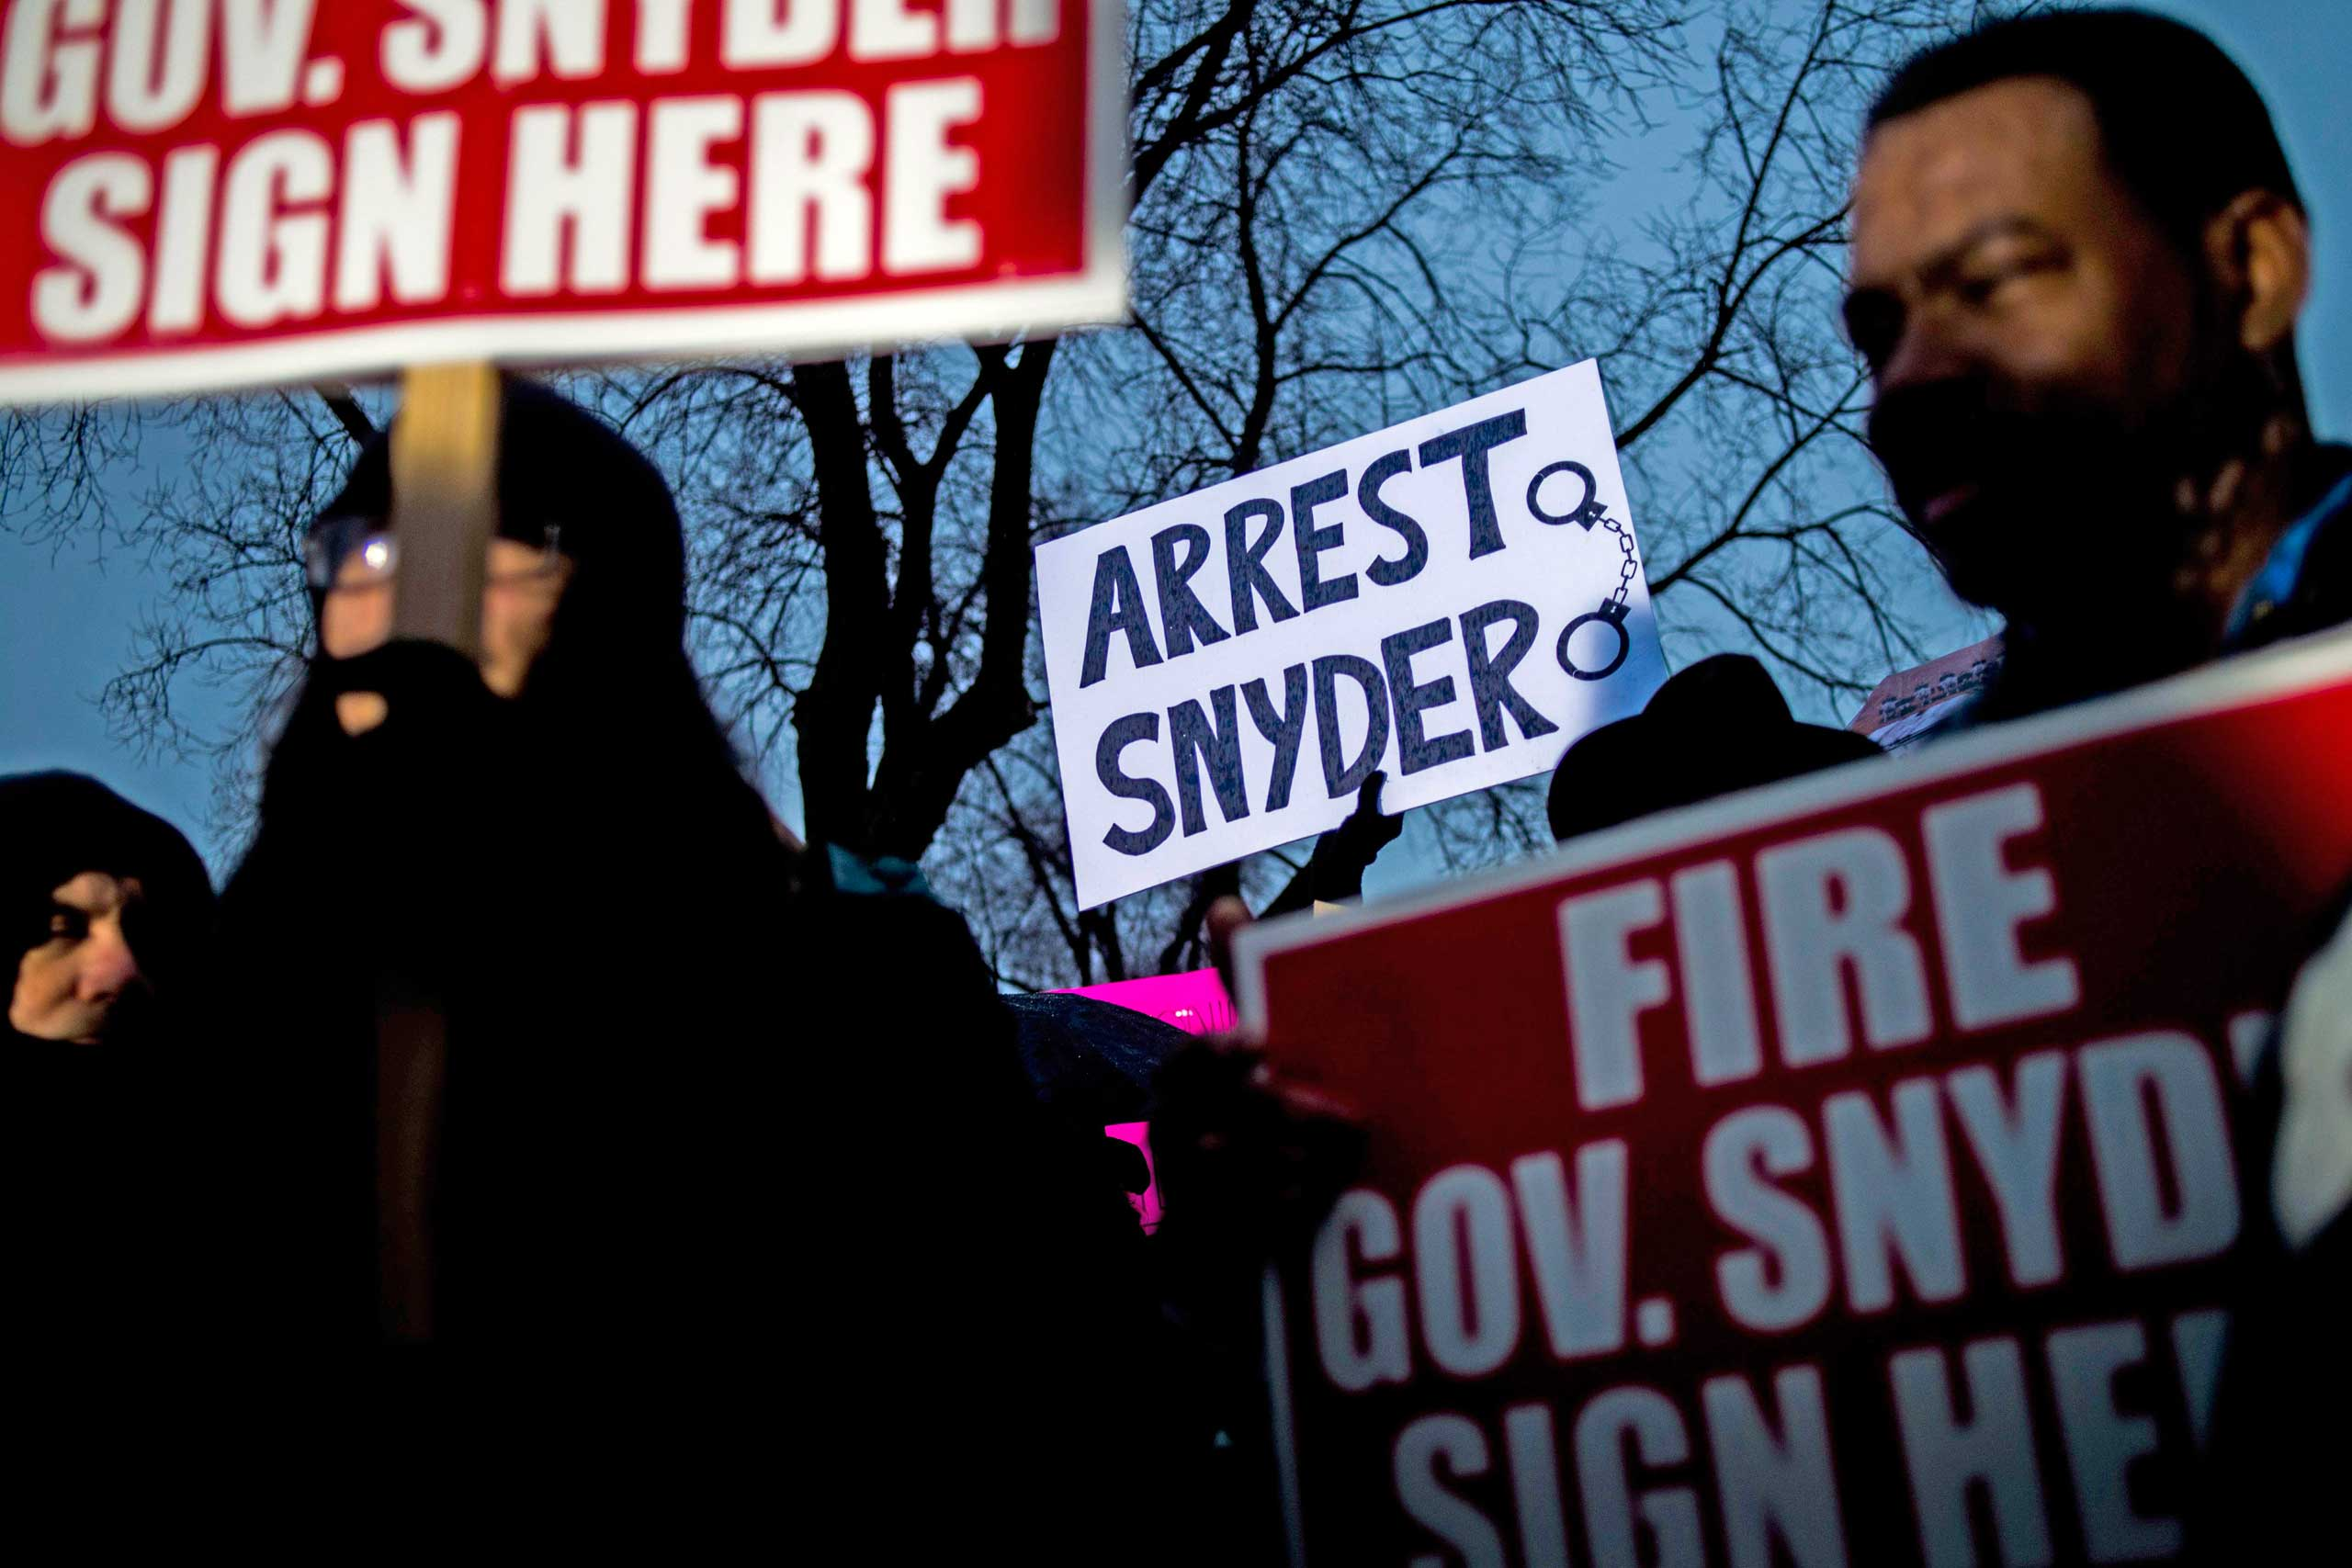 More than 150 activists stand outside of City Hall to protest Michigan Gov. Rick Snyder's handling of the water crisis, Jan. 8, 2016 in Flint. Mich.